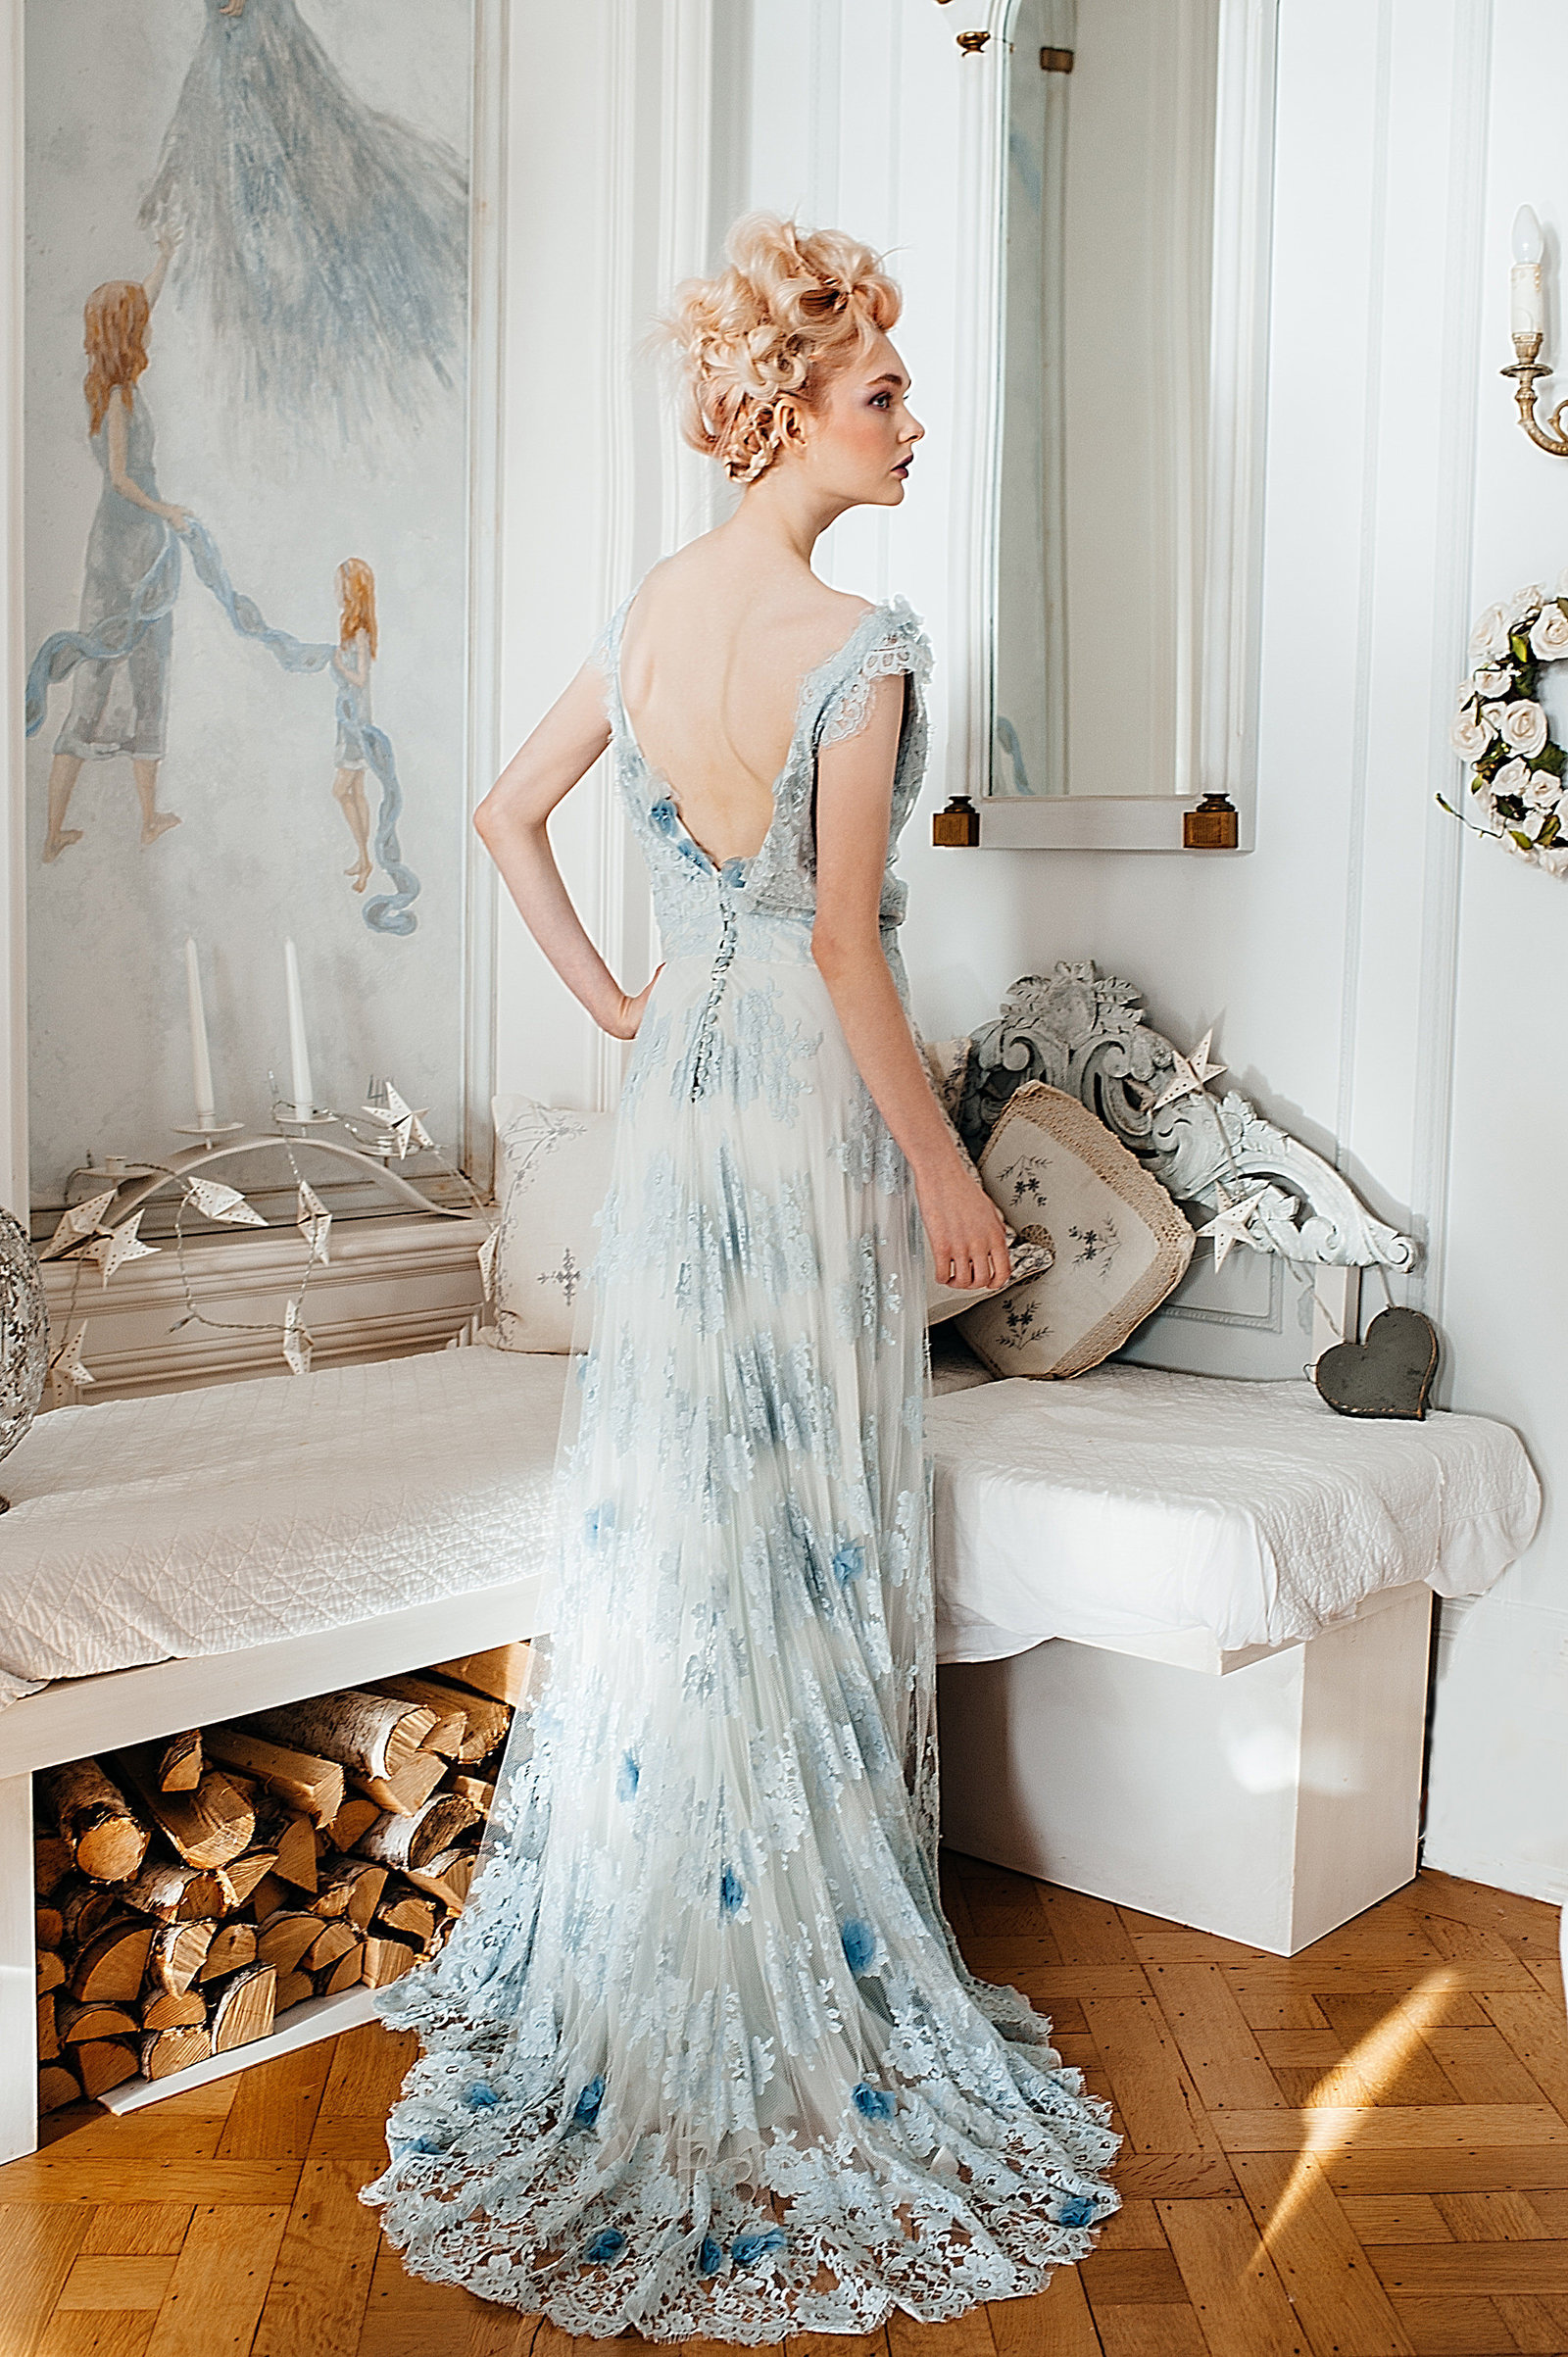 Harebell_pale_blue_lace_wedding_dress_JoanneFlemingDesign (5)